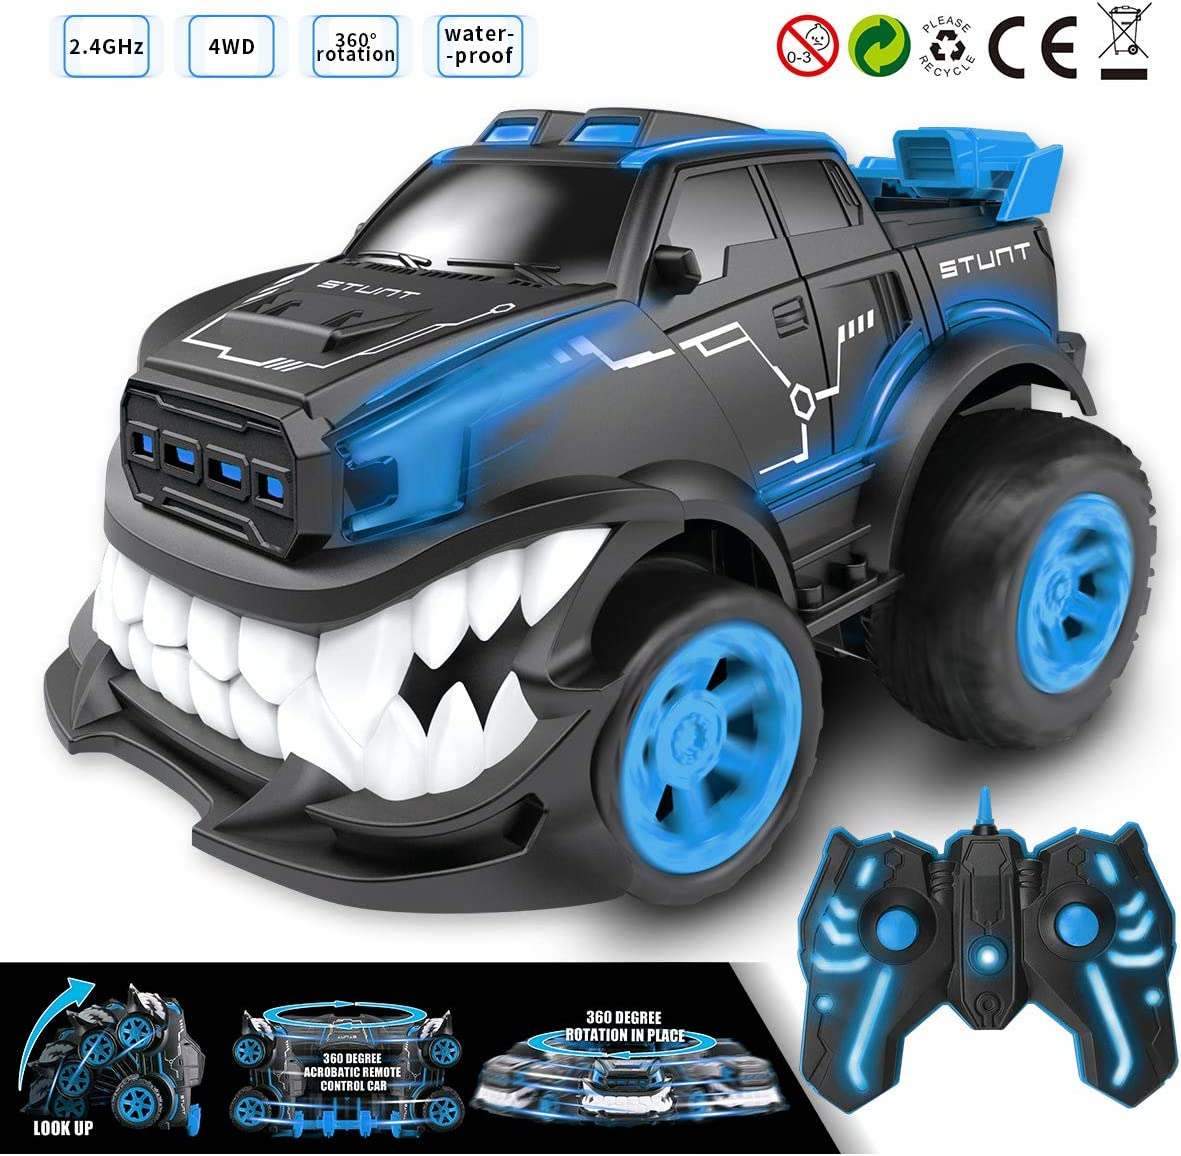 LEEUOR Remote Control Car,RC Stunt Inverted and 360° Rotation Shark Angry Style for Boys & Kids,2.4Ghz with Flashing Lights (Blue)